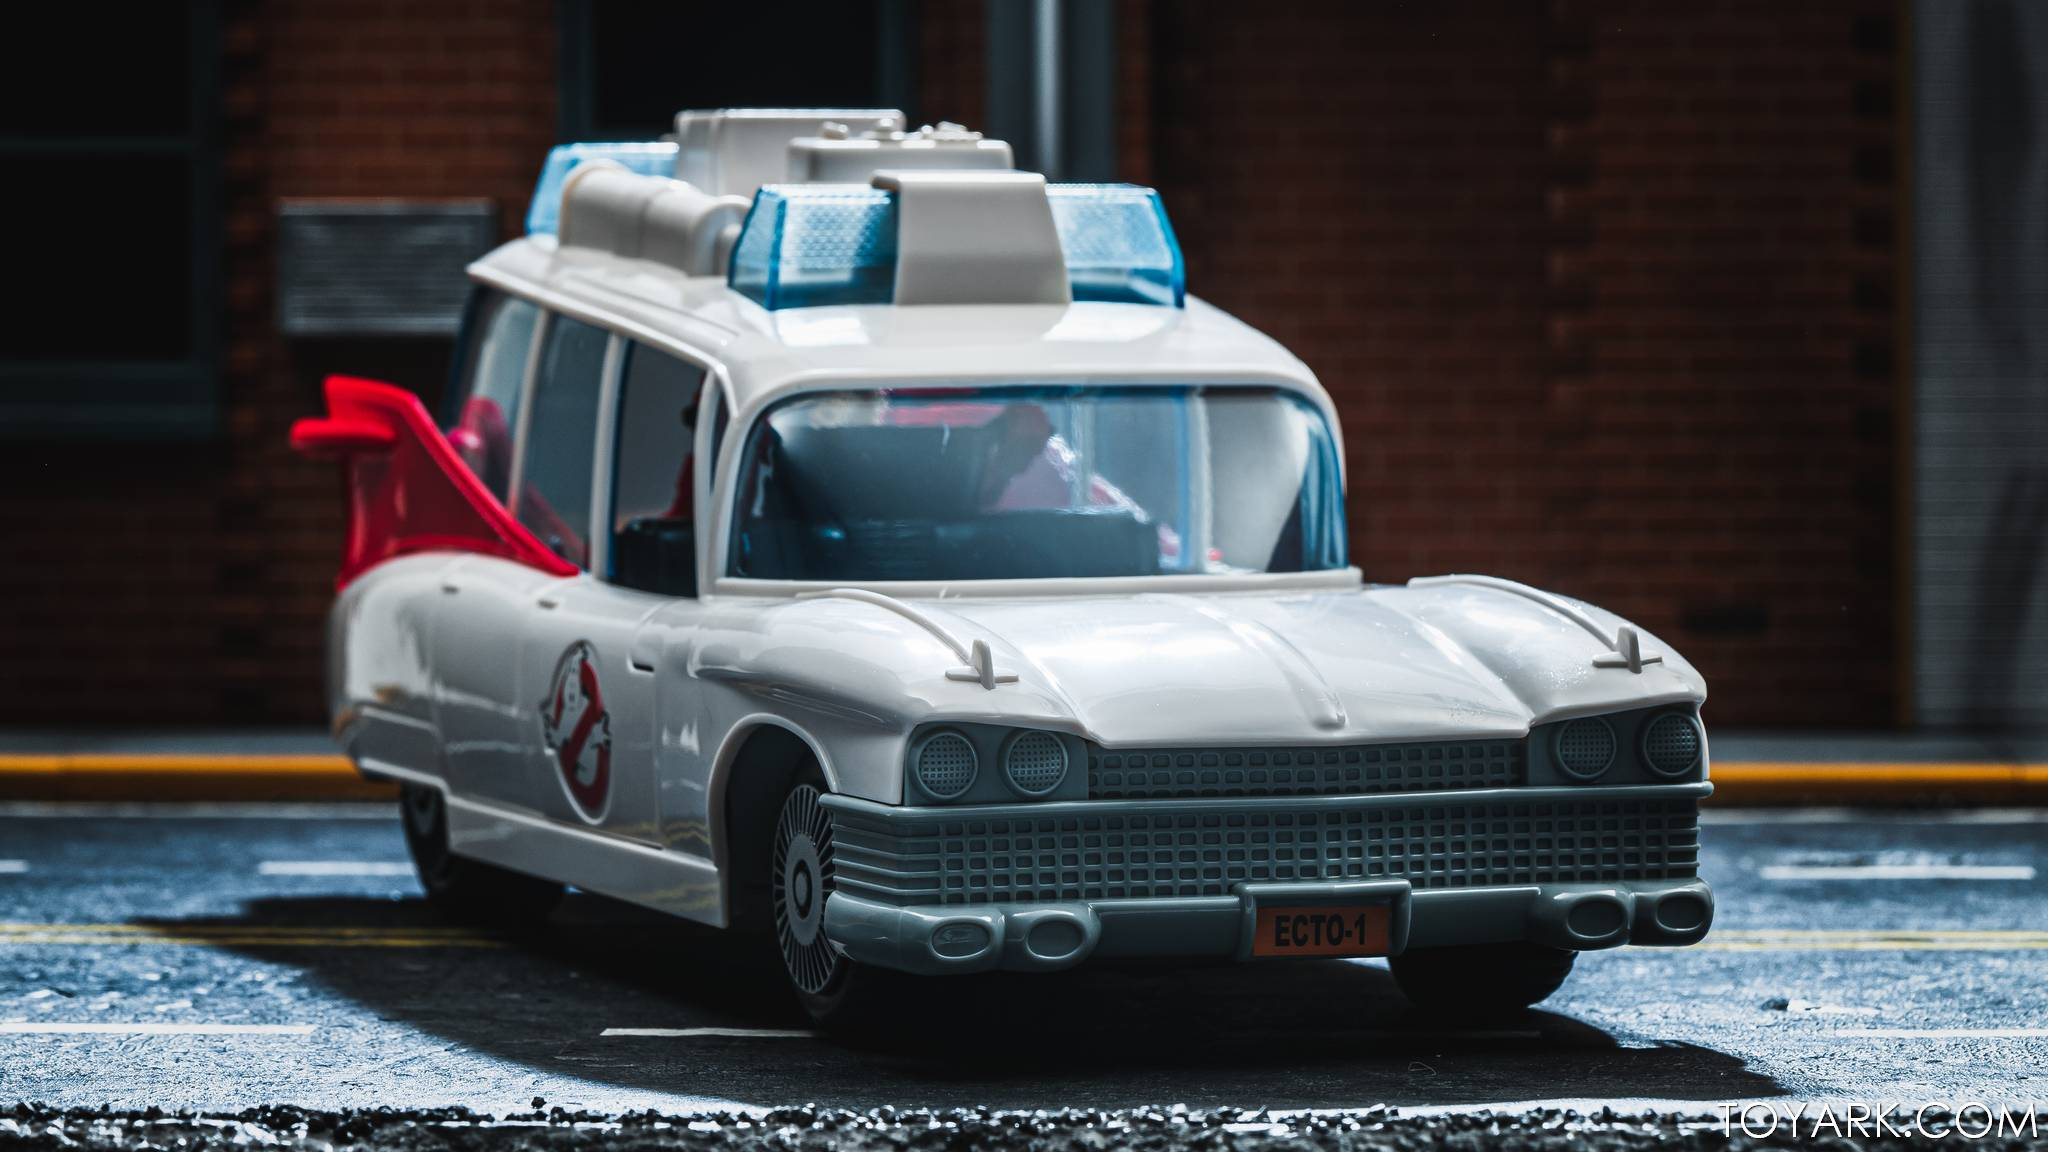 Kenner Classic Ghostbusters 57